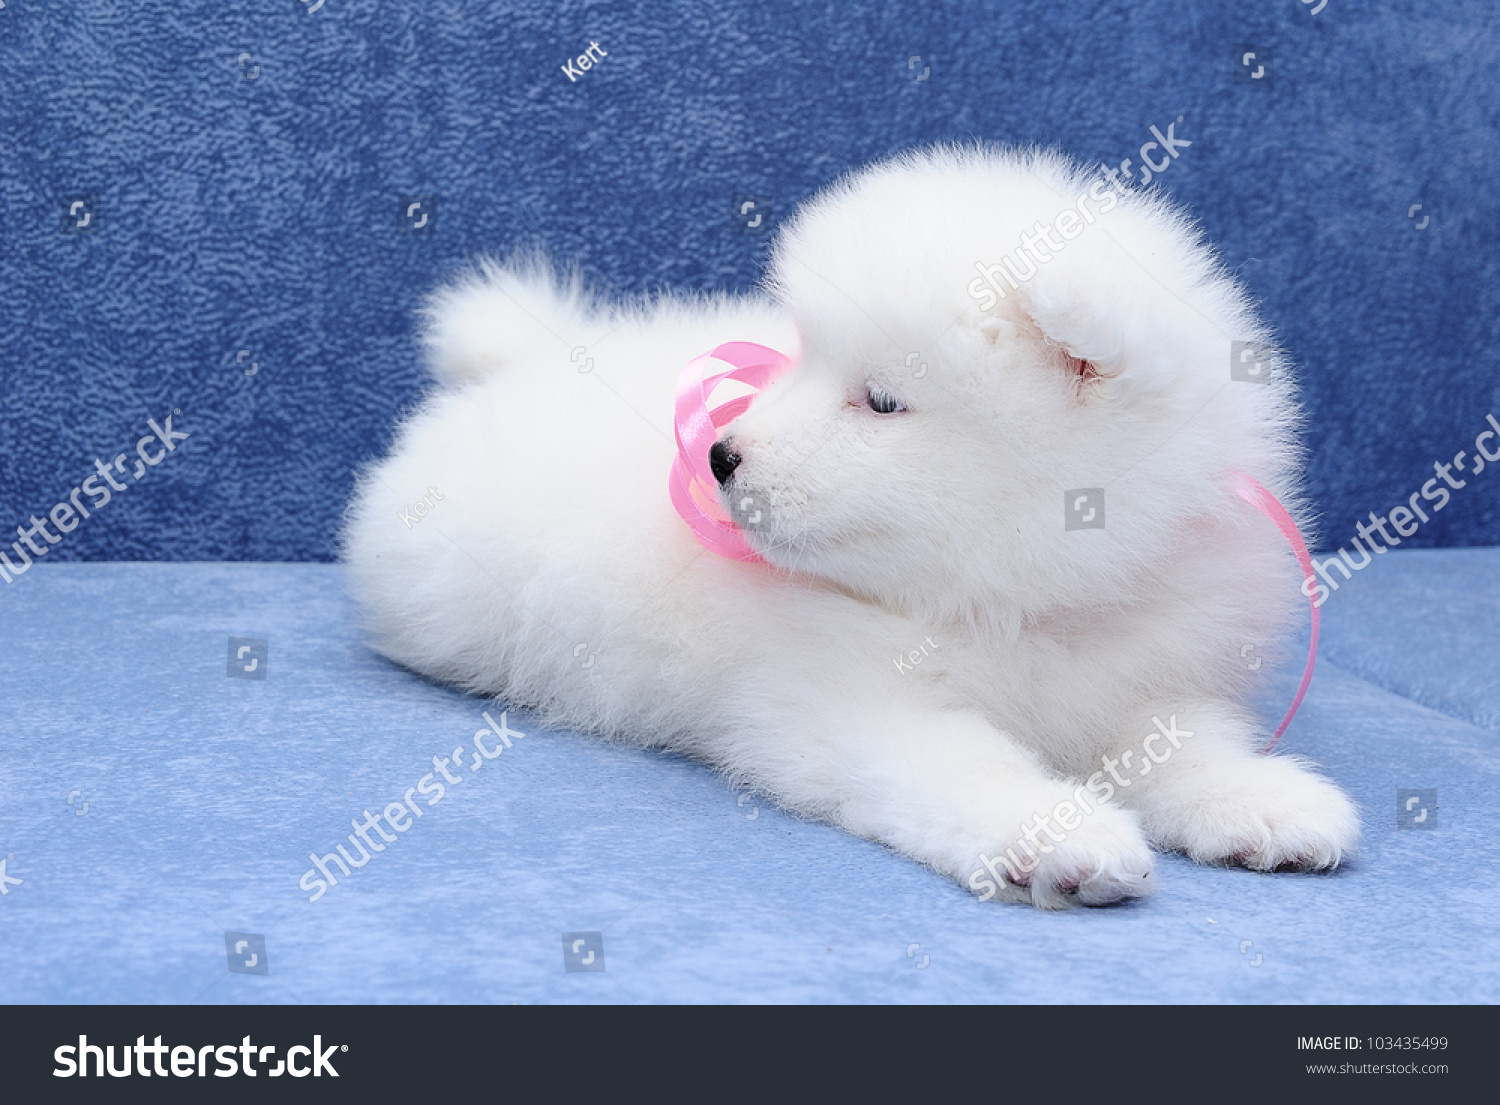 Cutest Smiling Samoyed Bjelkier Puppy Pink Stock Photo Edit Now 103435499